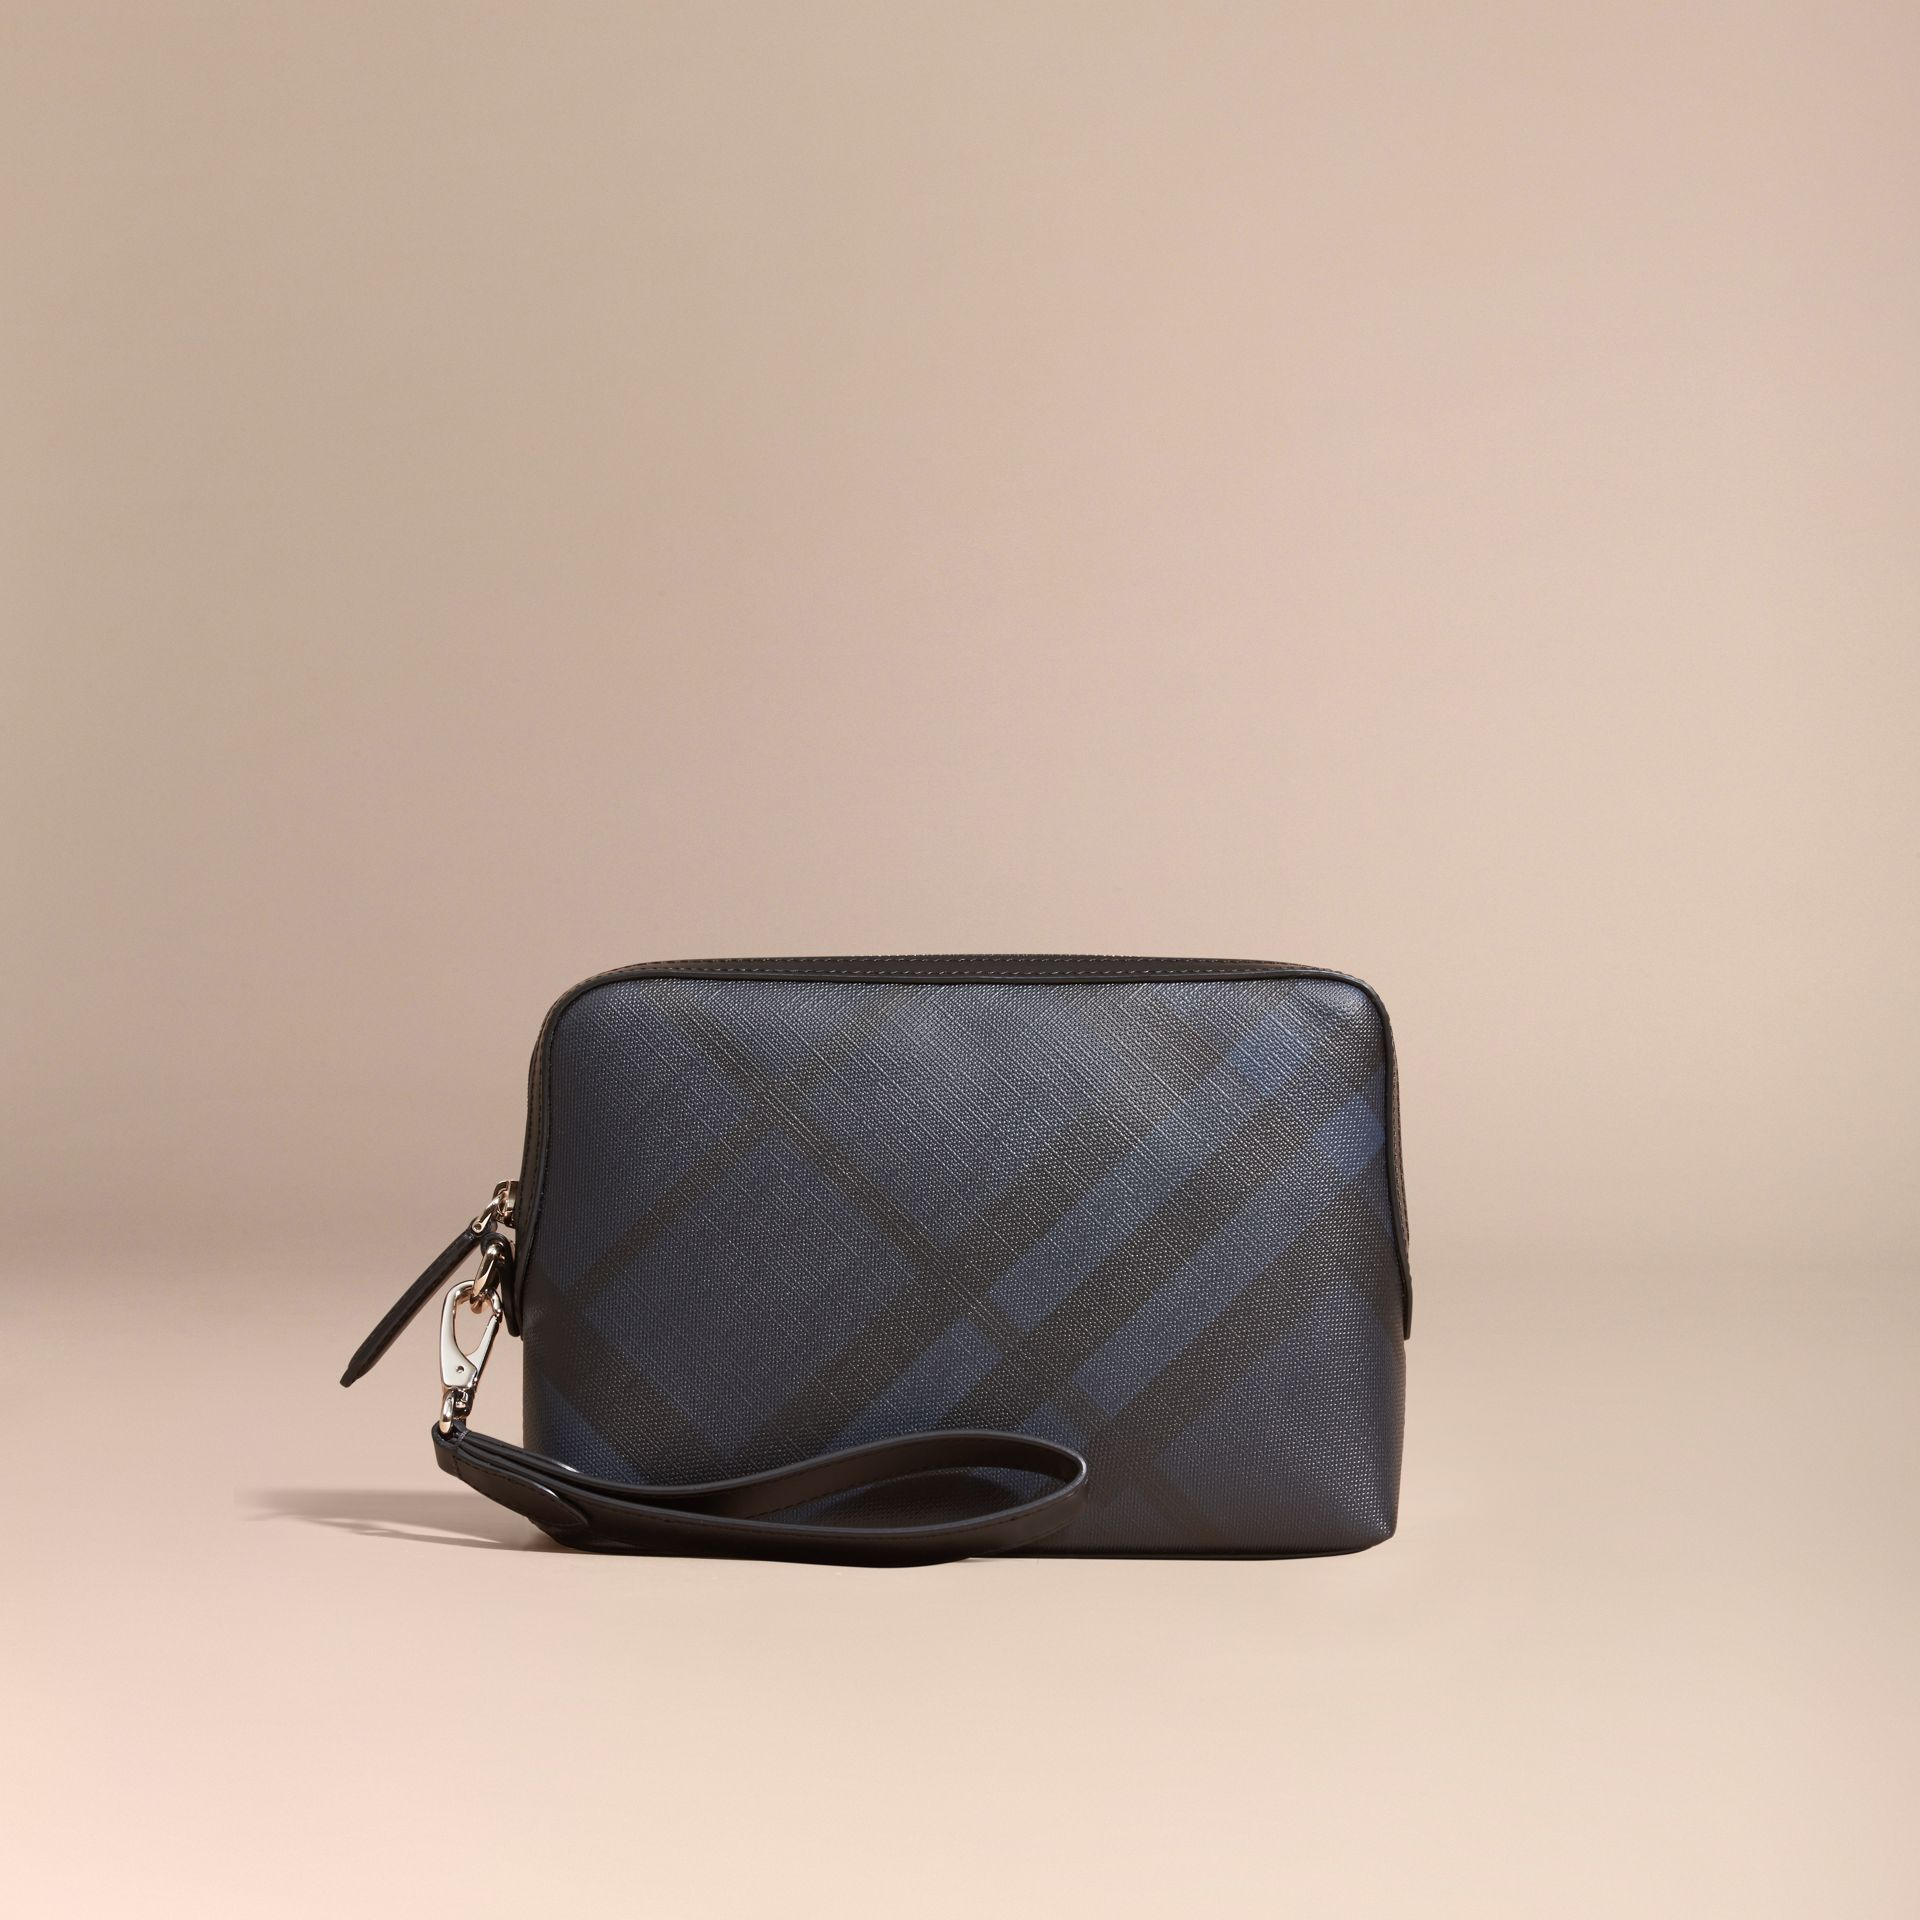 Leather-trimmed London Check Pouch Navy/black - gallery image 6